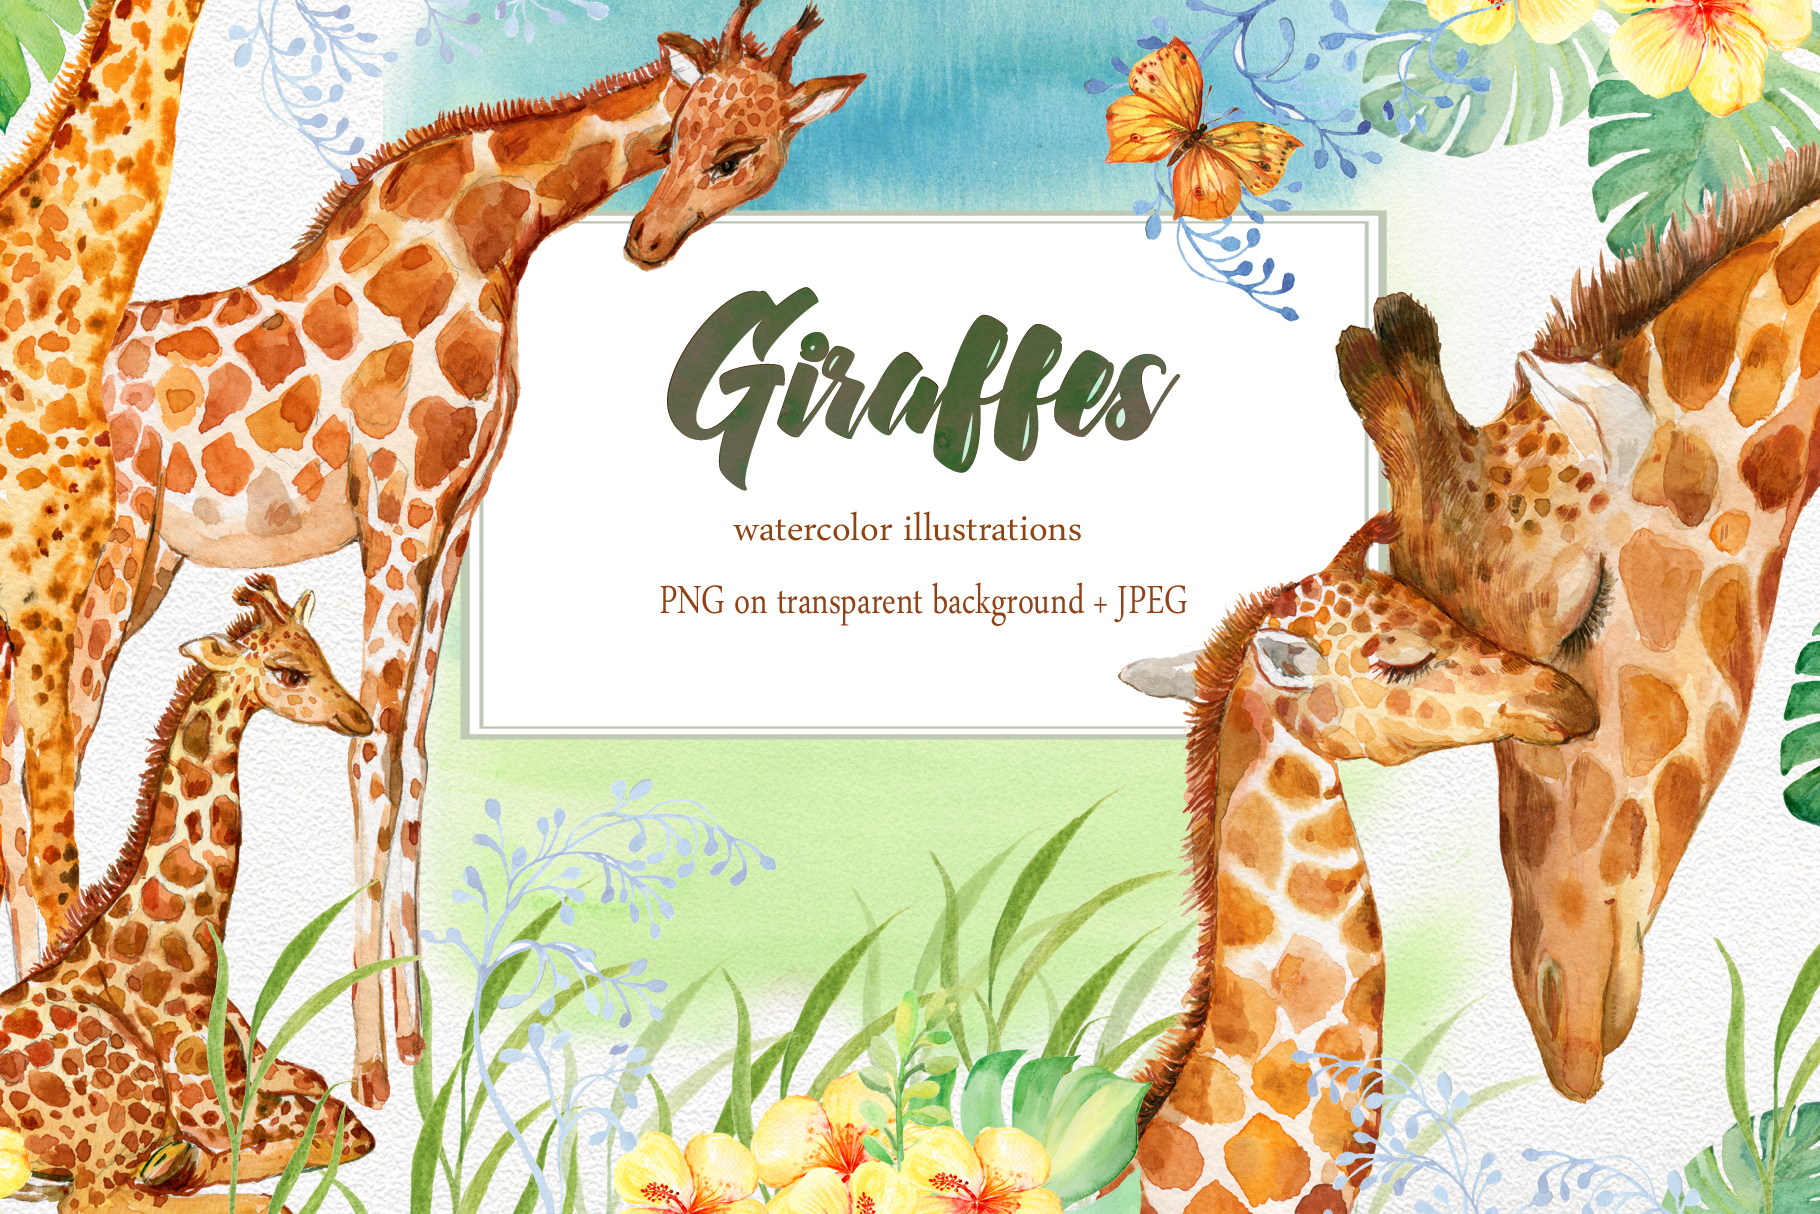 Giraffes. watercolor illustrations example image 1